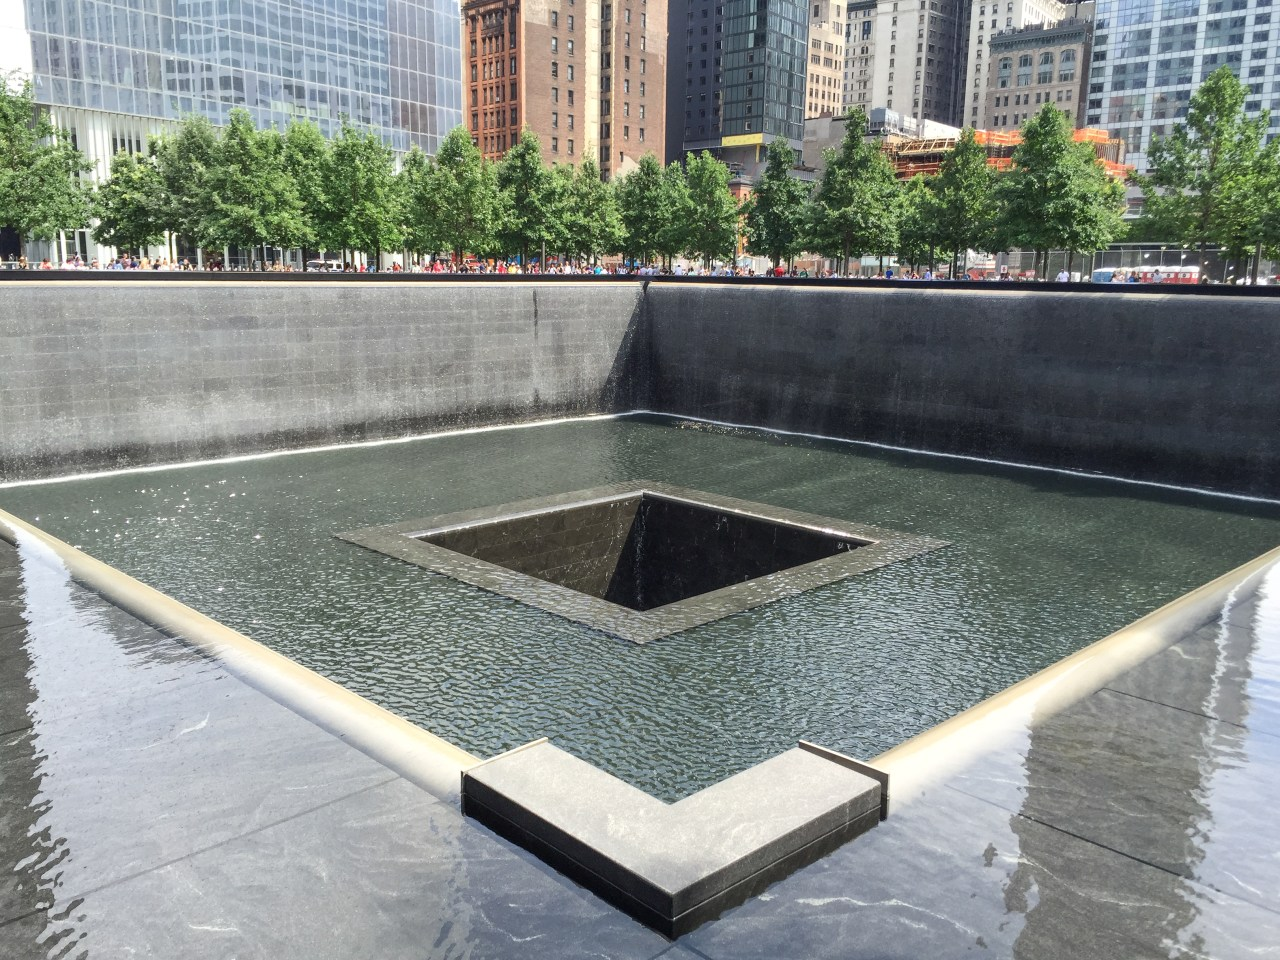 Reflecting pool a the World Trade Center memorial